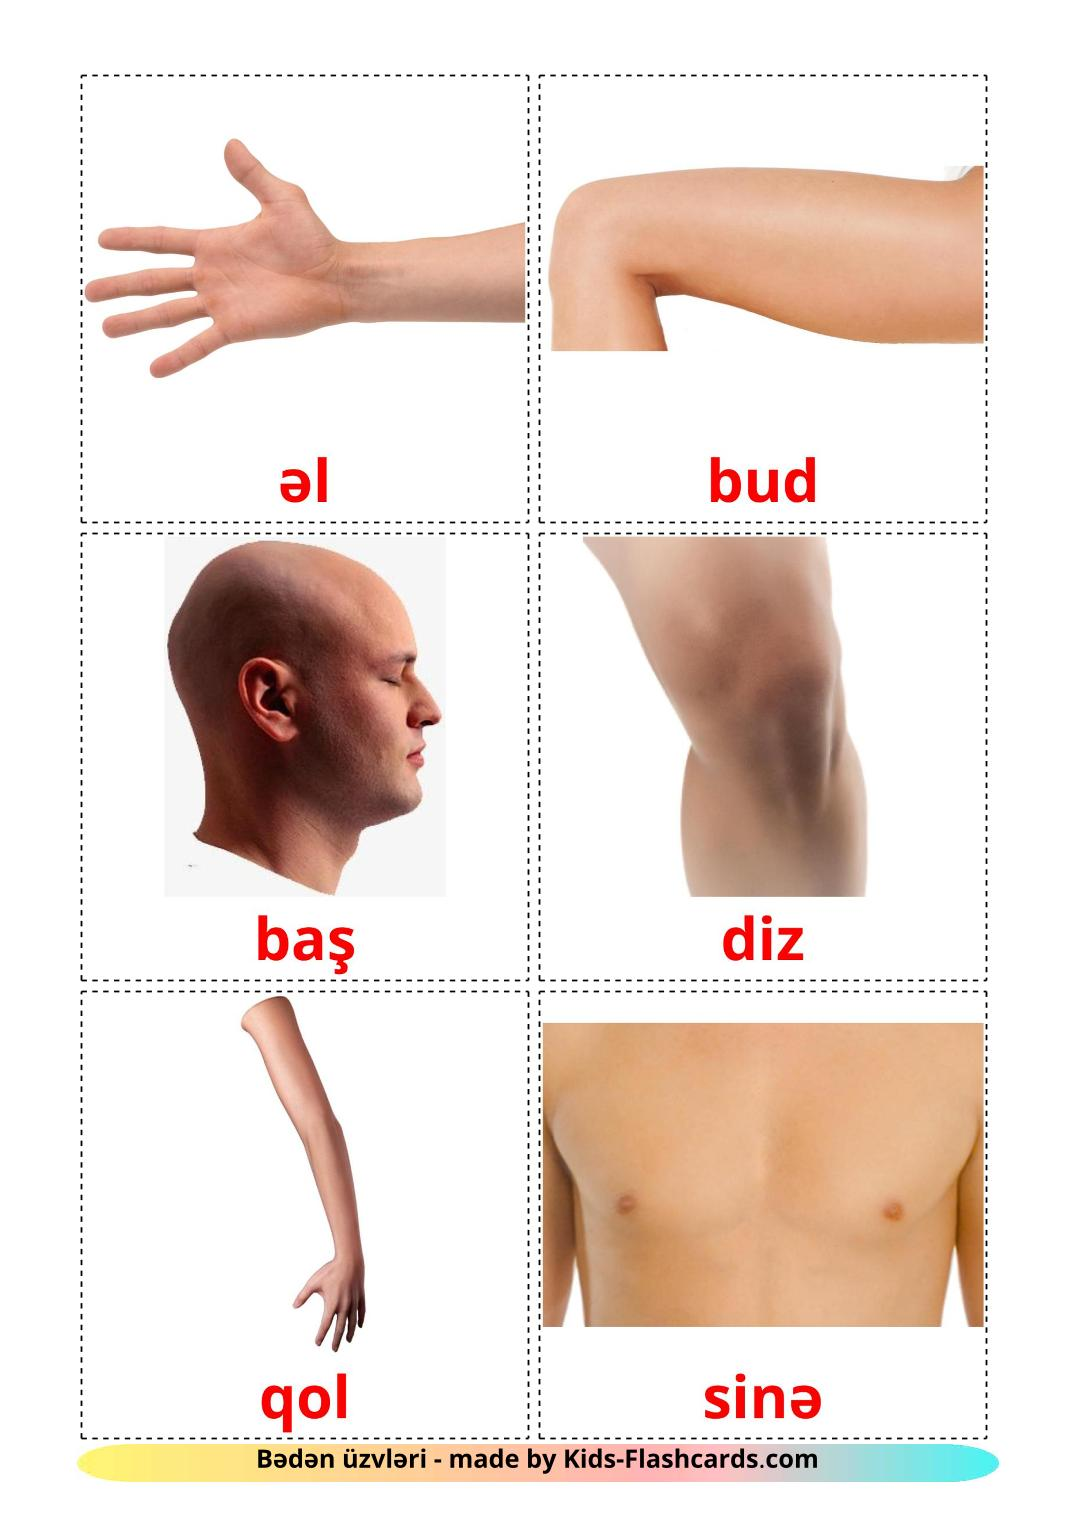 Body Parts - 26 Free Printable azerbaijani Flashcards